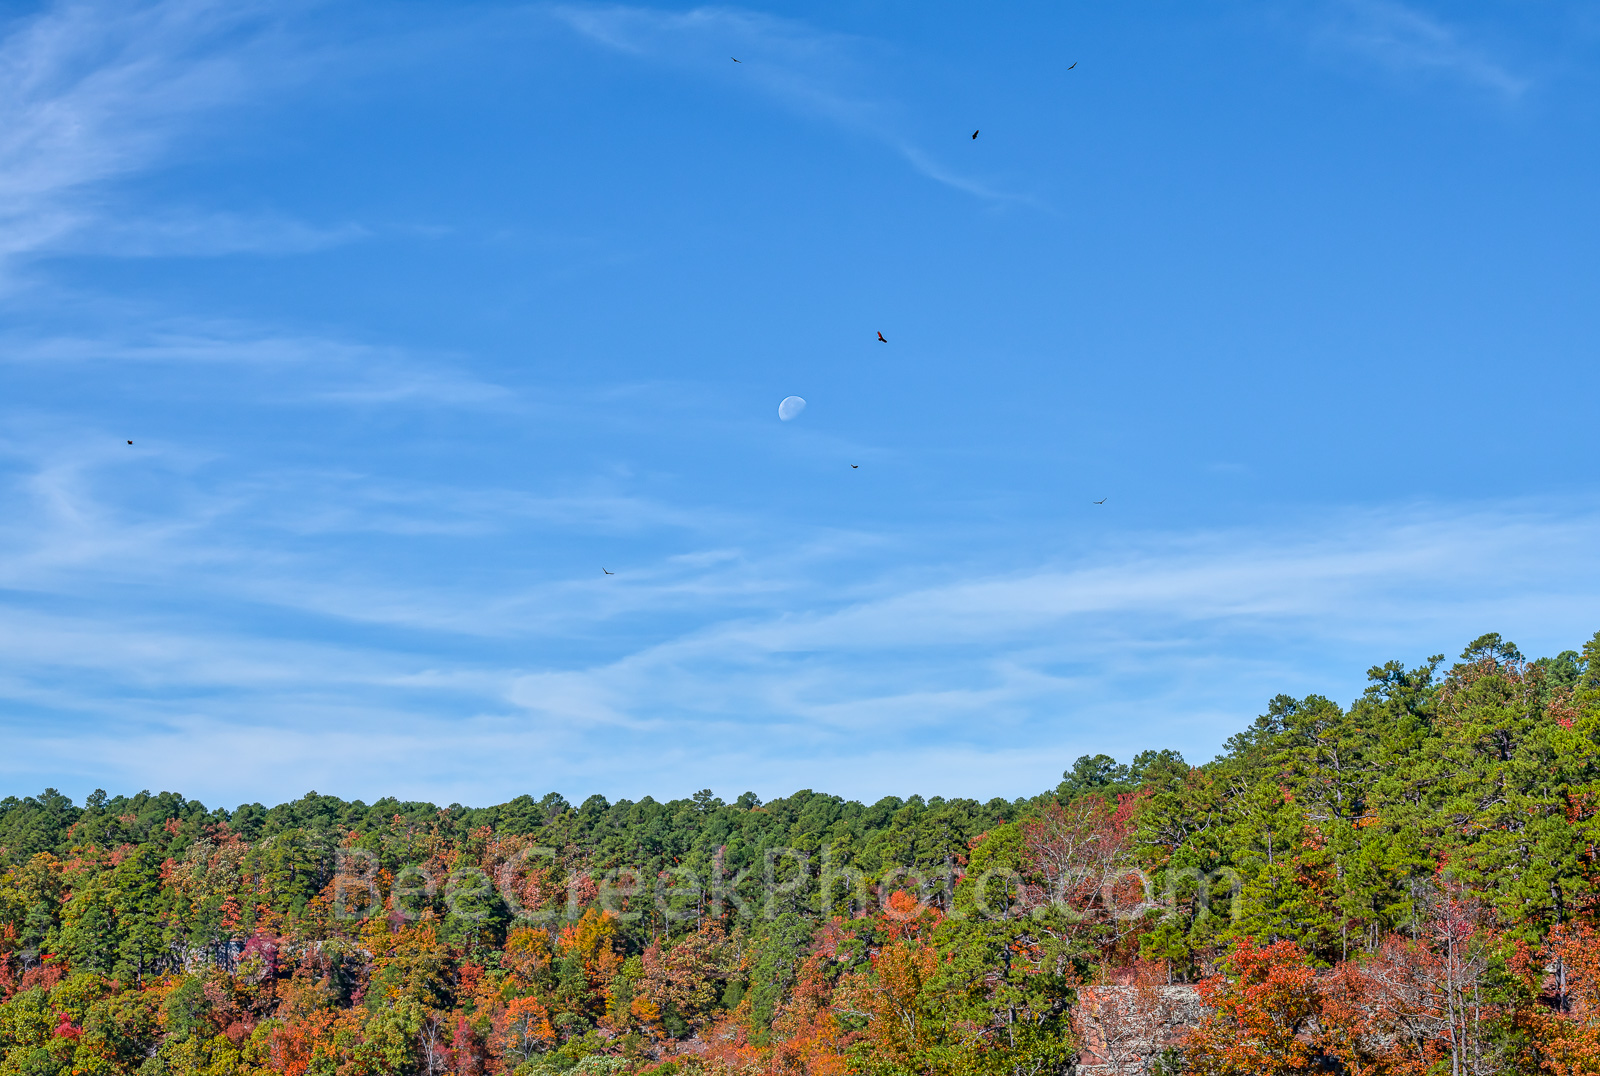 Fall, moon, colors, trees, buzzards, blue, sky, autumn, scene, Petit Jean State Park, mountain, Quachita Mountains, Ozark, orange, red, green,, photo